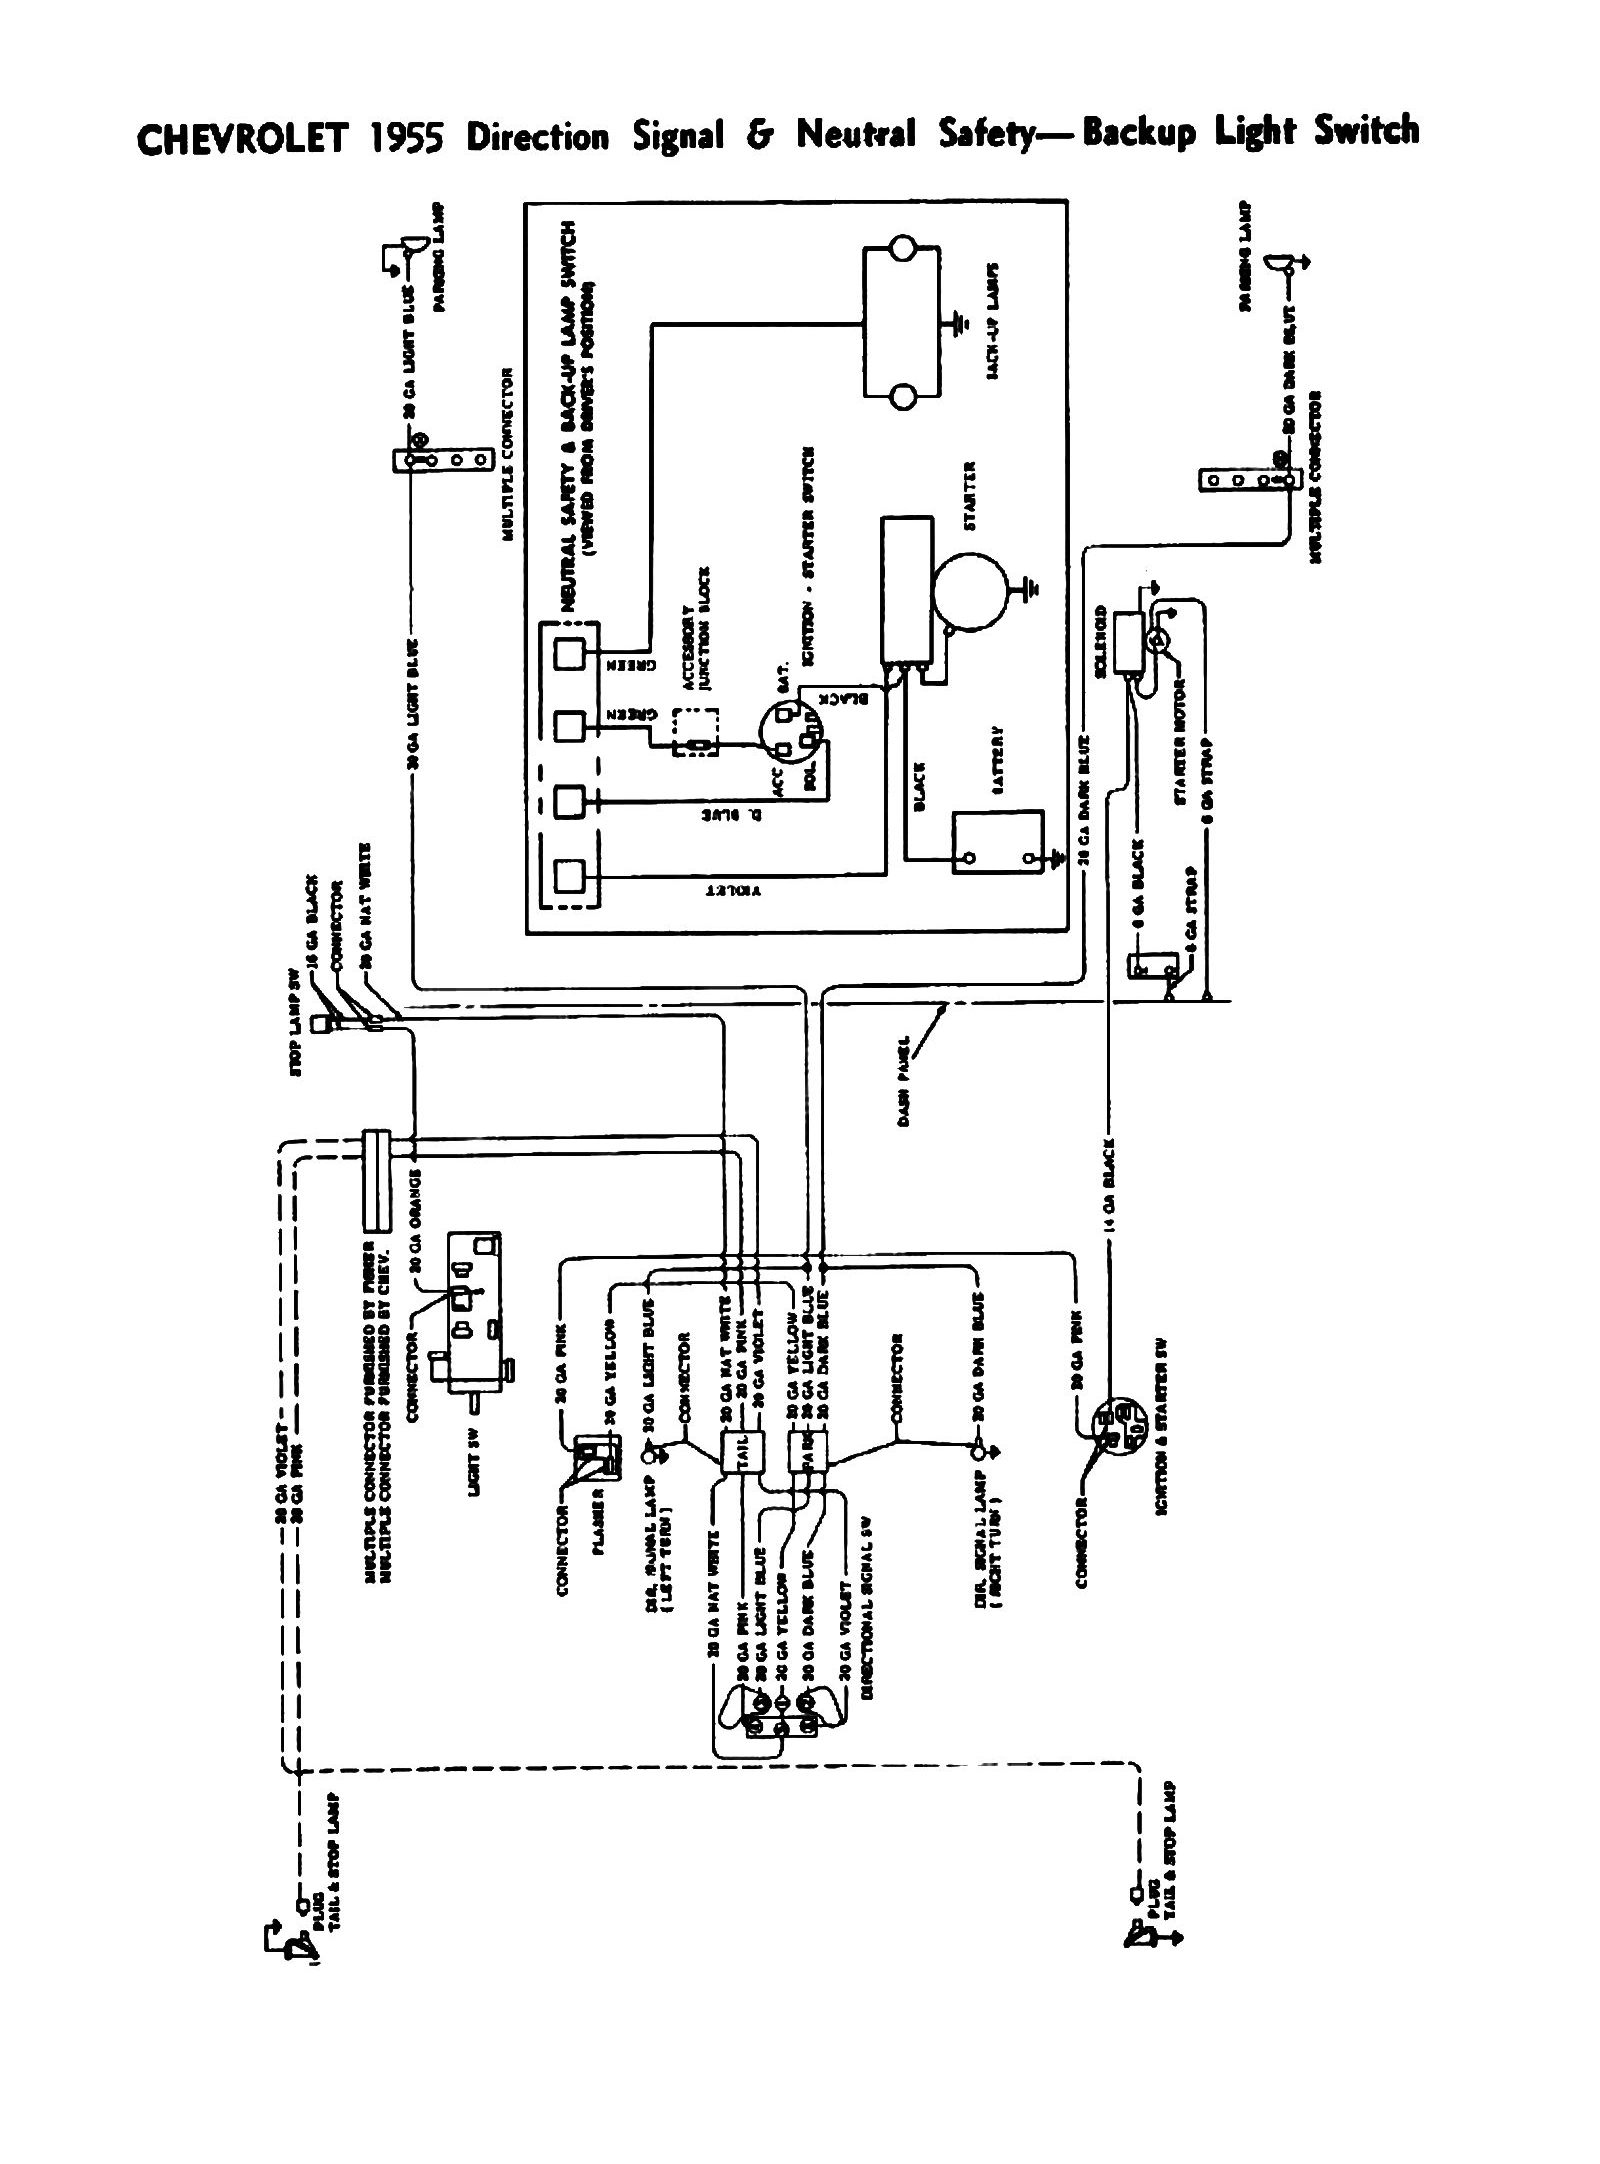 1950 Gmc Wiring Diagram | Wiring Diagram  Chevrolet Apache Wiring Diagram on 1961 chevrolet truck, 1961 ford apache, 1958 gmc apache, chippewa apache, 1961 chevrolet deluxe, chevy apache, jeep apache, 1961 chevrolet stepside,